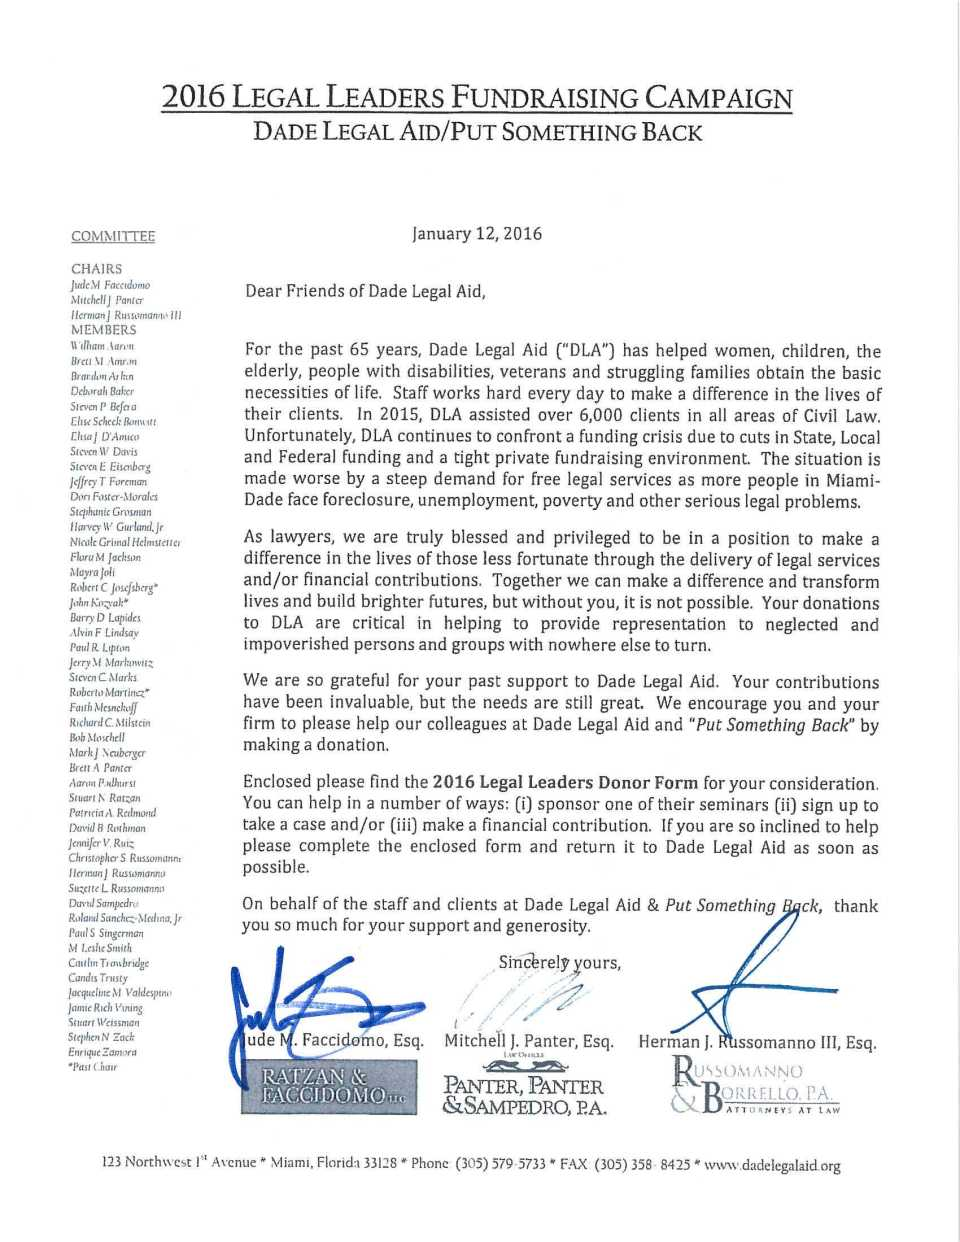 LEGAL LEADERS LETTER SIGNED